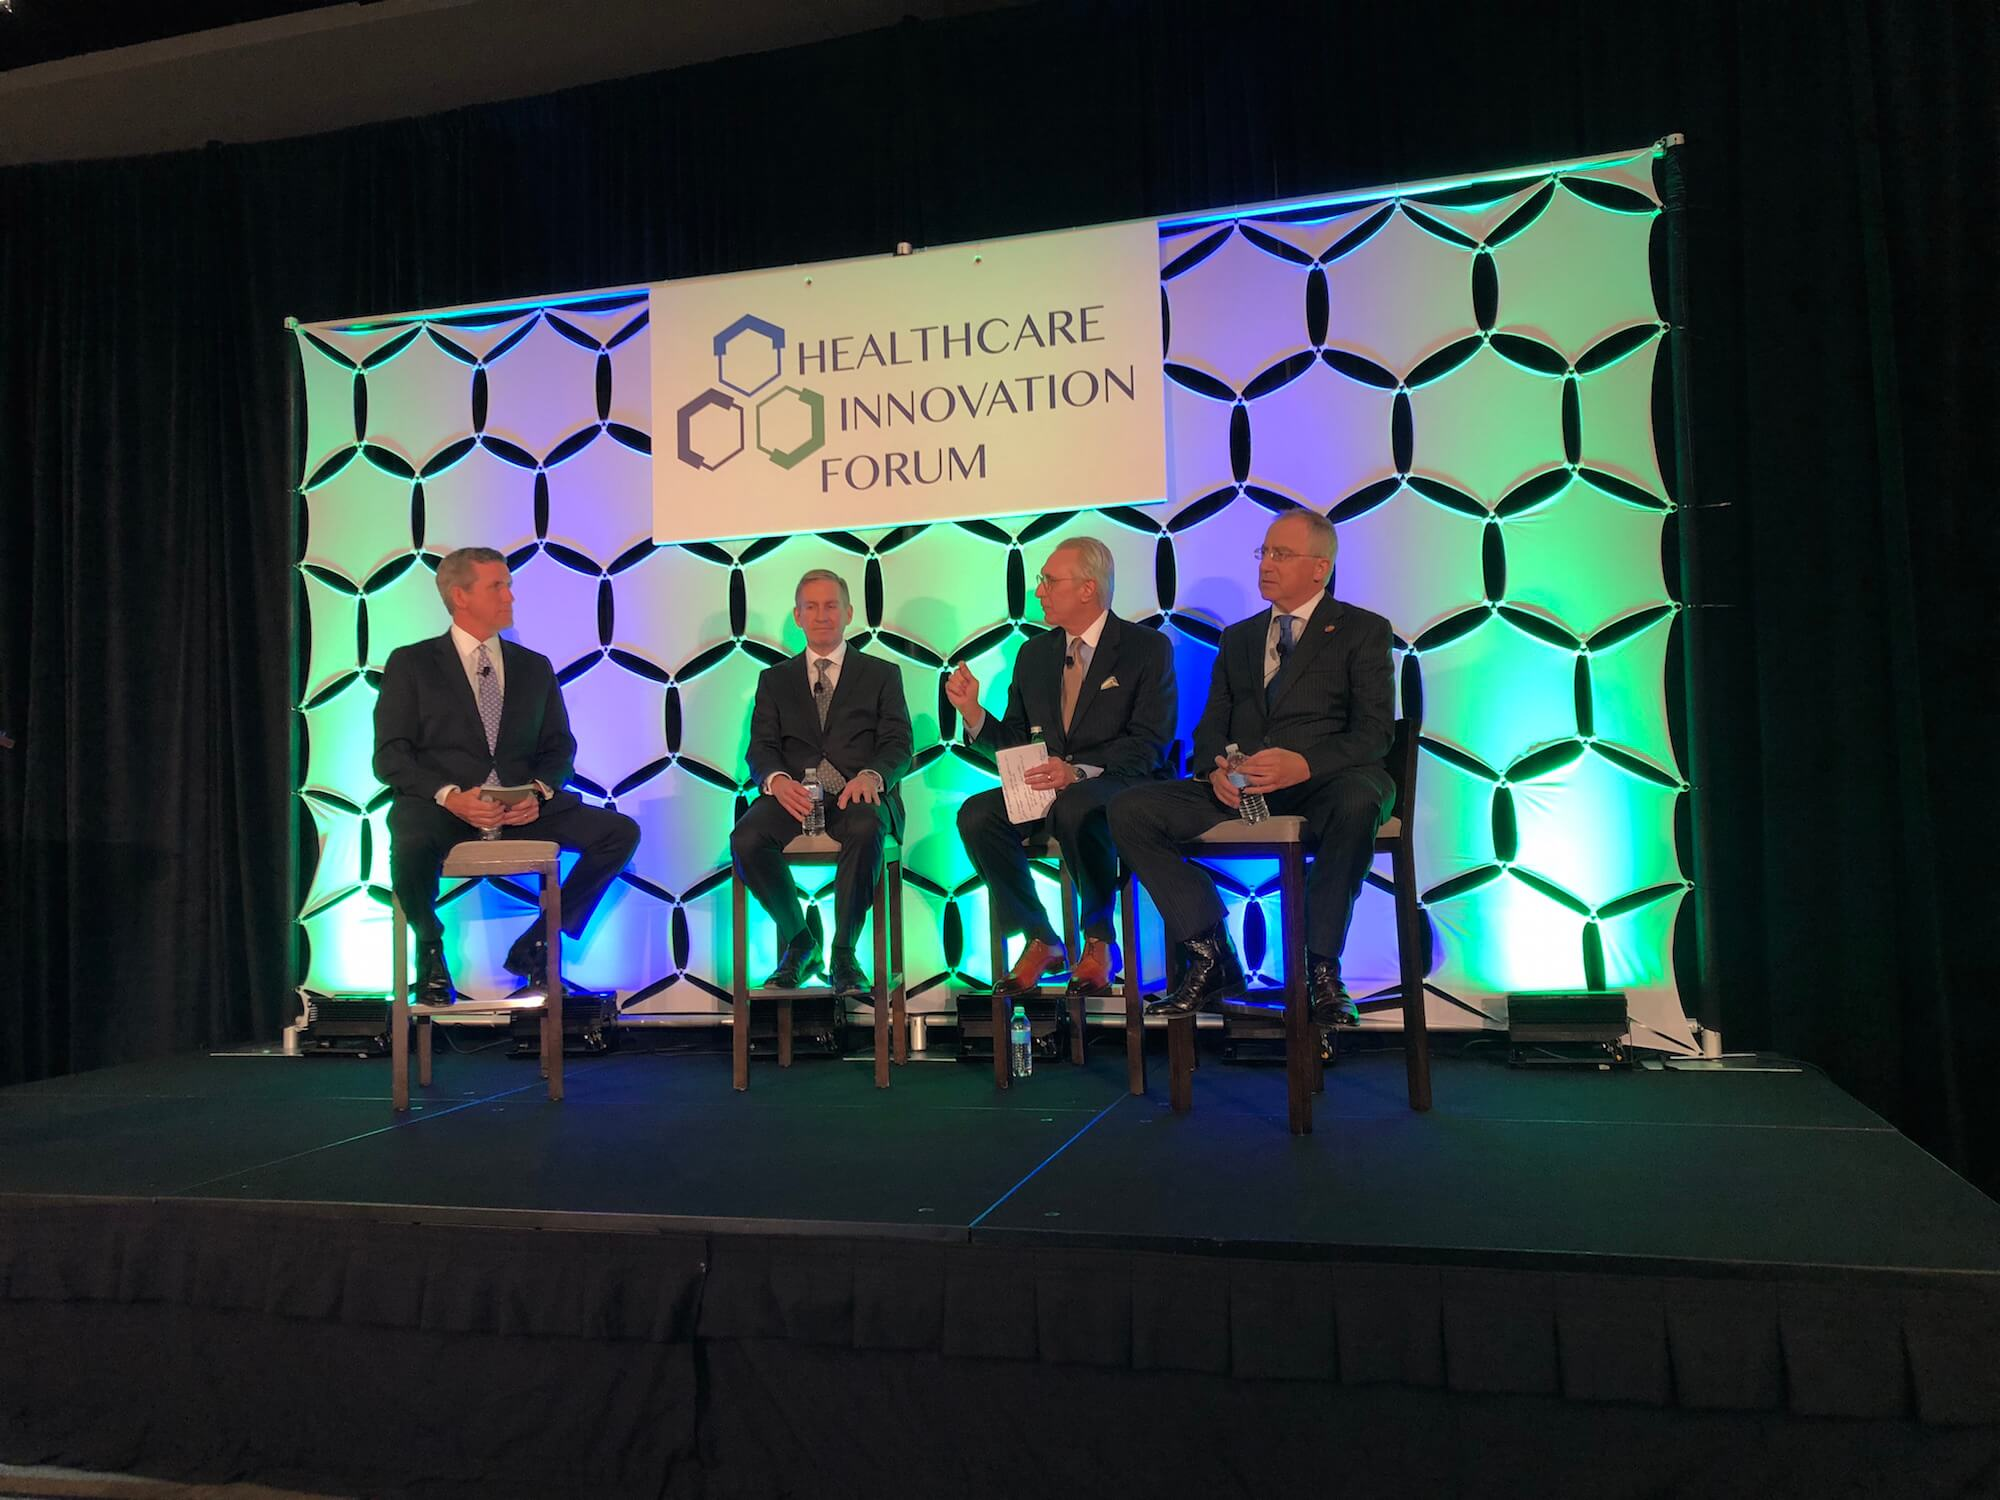 Texas Medical Center President & CEO William McKeon leads a keynote panel at the Texas Healthcare Innovation Forum featuring Peter Pisters, M.D., M.H.C.M., president of MD Anderson; Chuck Stokes, president & CEO of Memorial Hermann Health System; and Giuseppe Colasurdo, M.D., president of UTHealth.